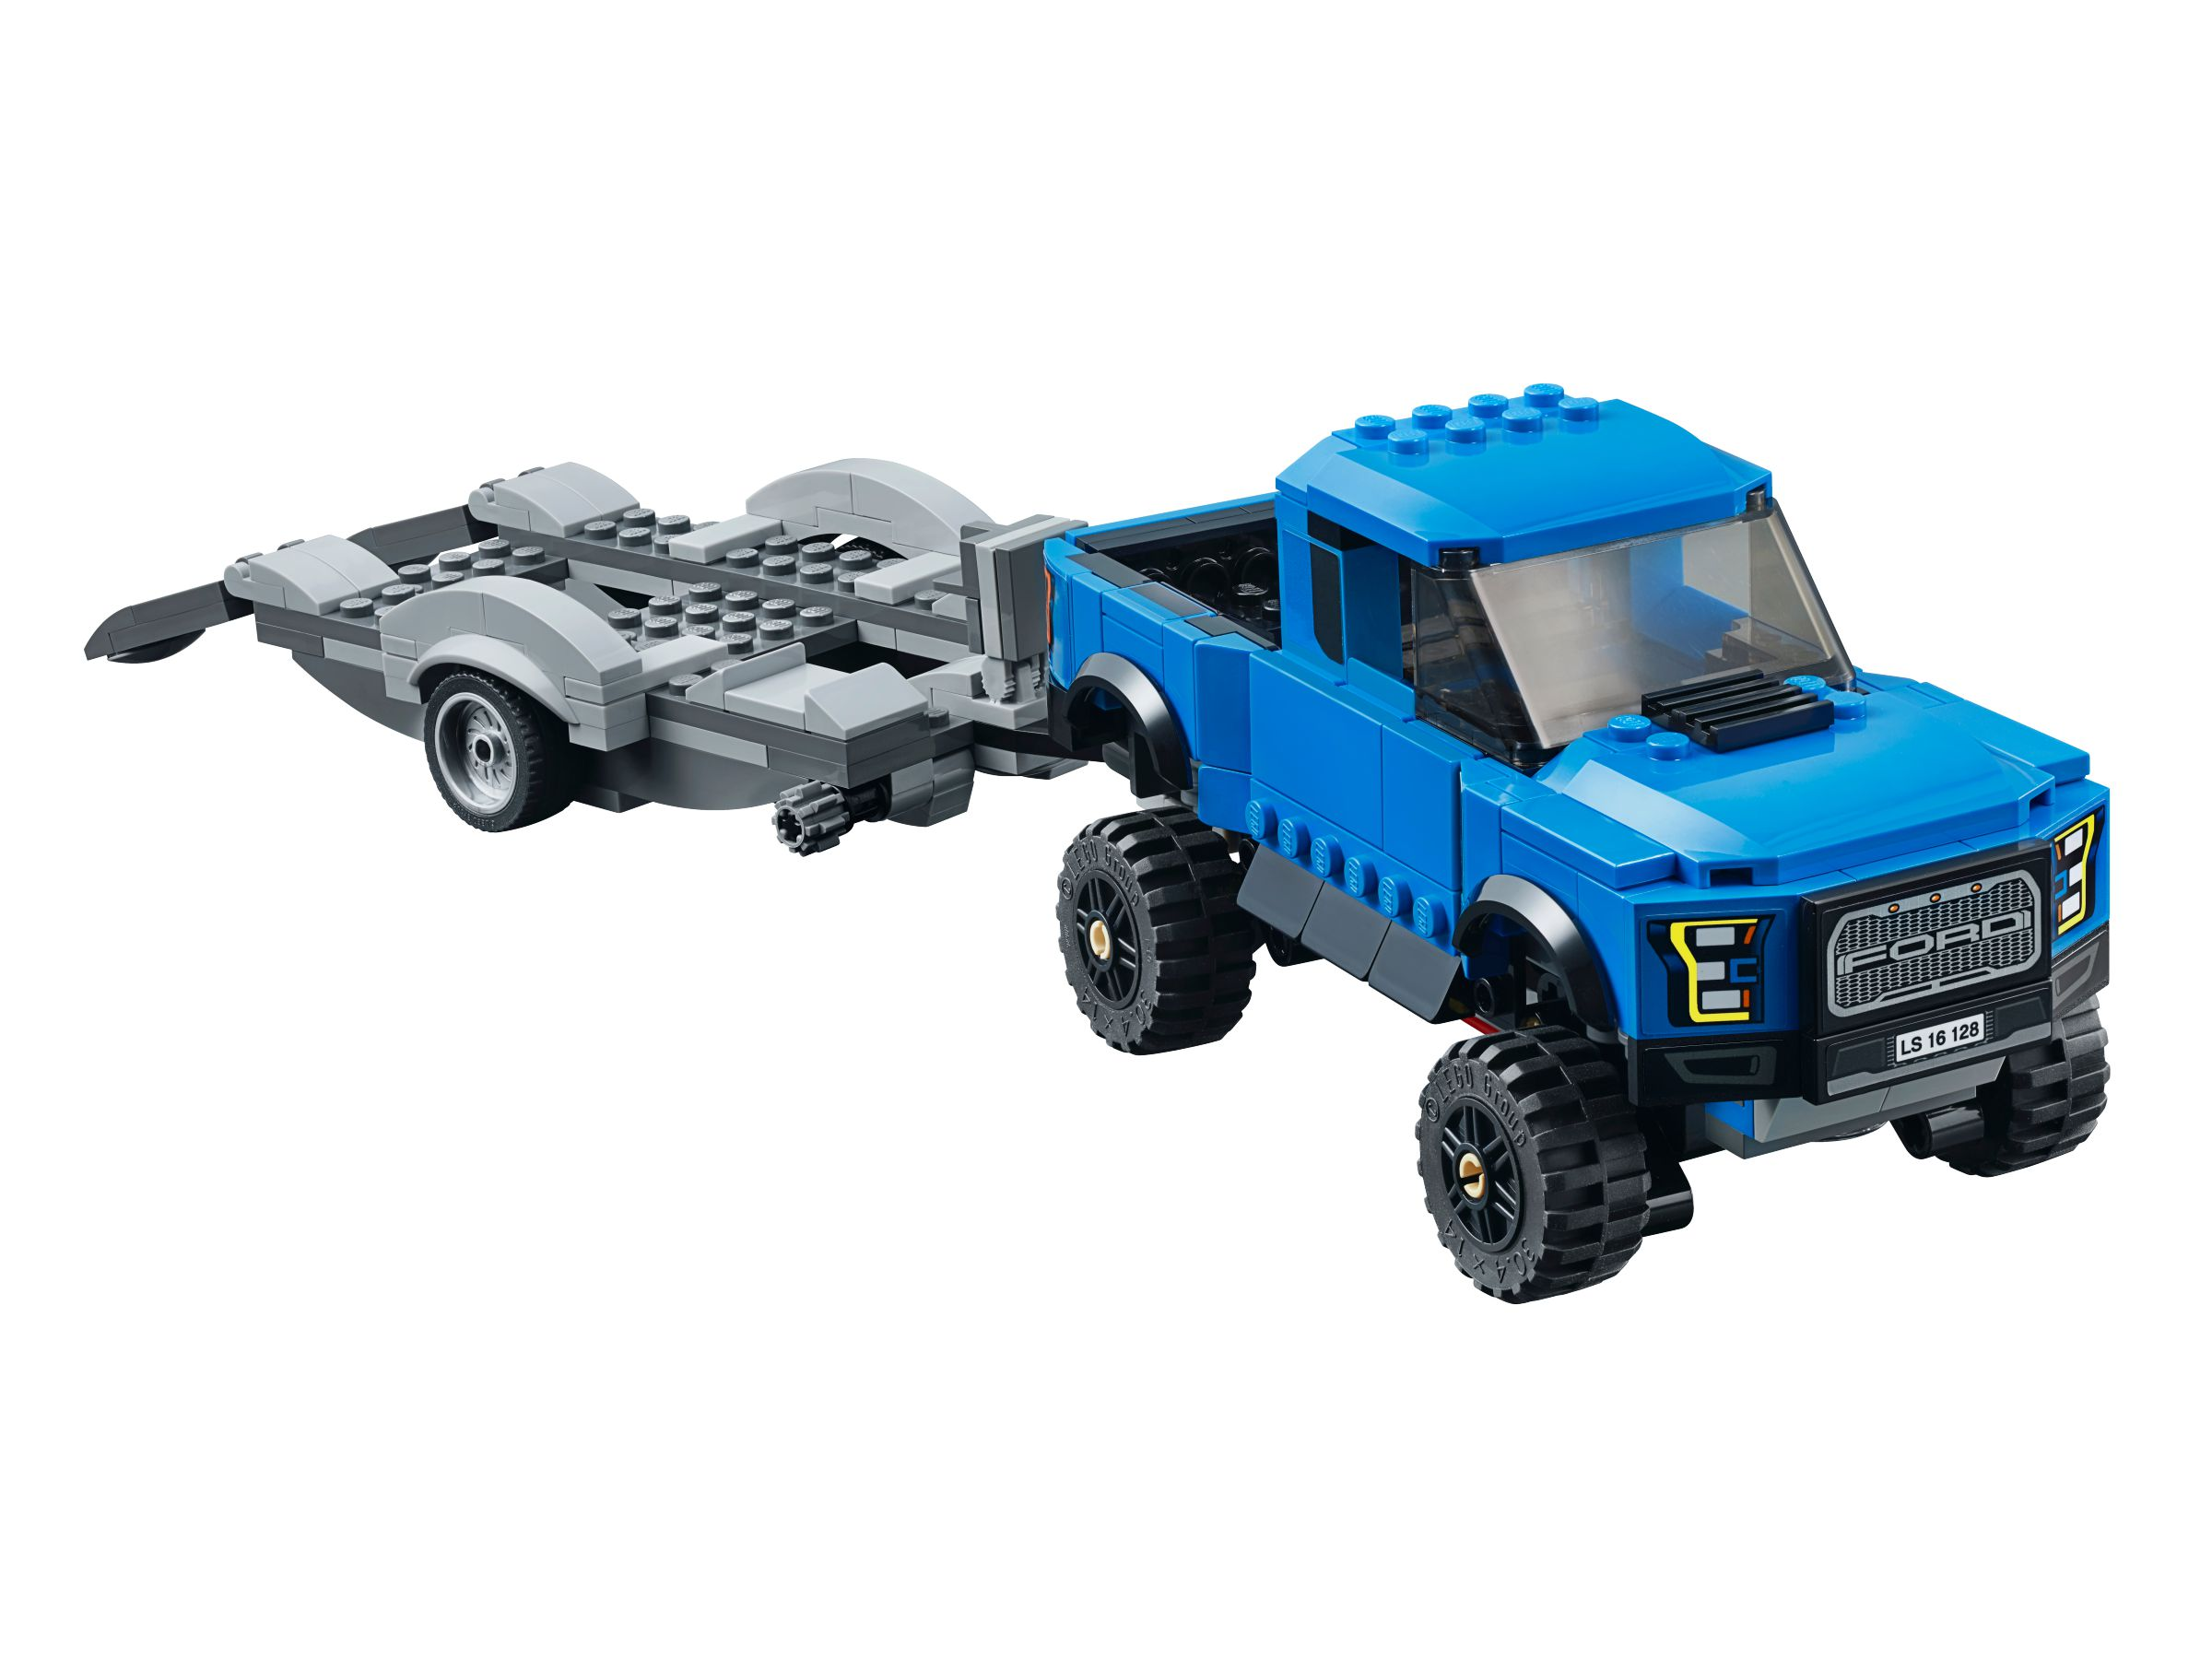 LEGO Speed Champions 75875 Ford F-150 Raptor & Ford Model A Hot Rod LEGO_75875_alt4.jpg